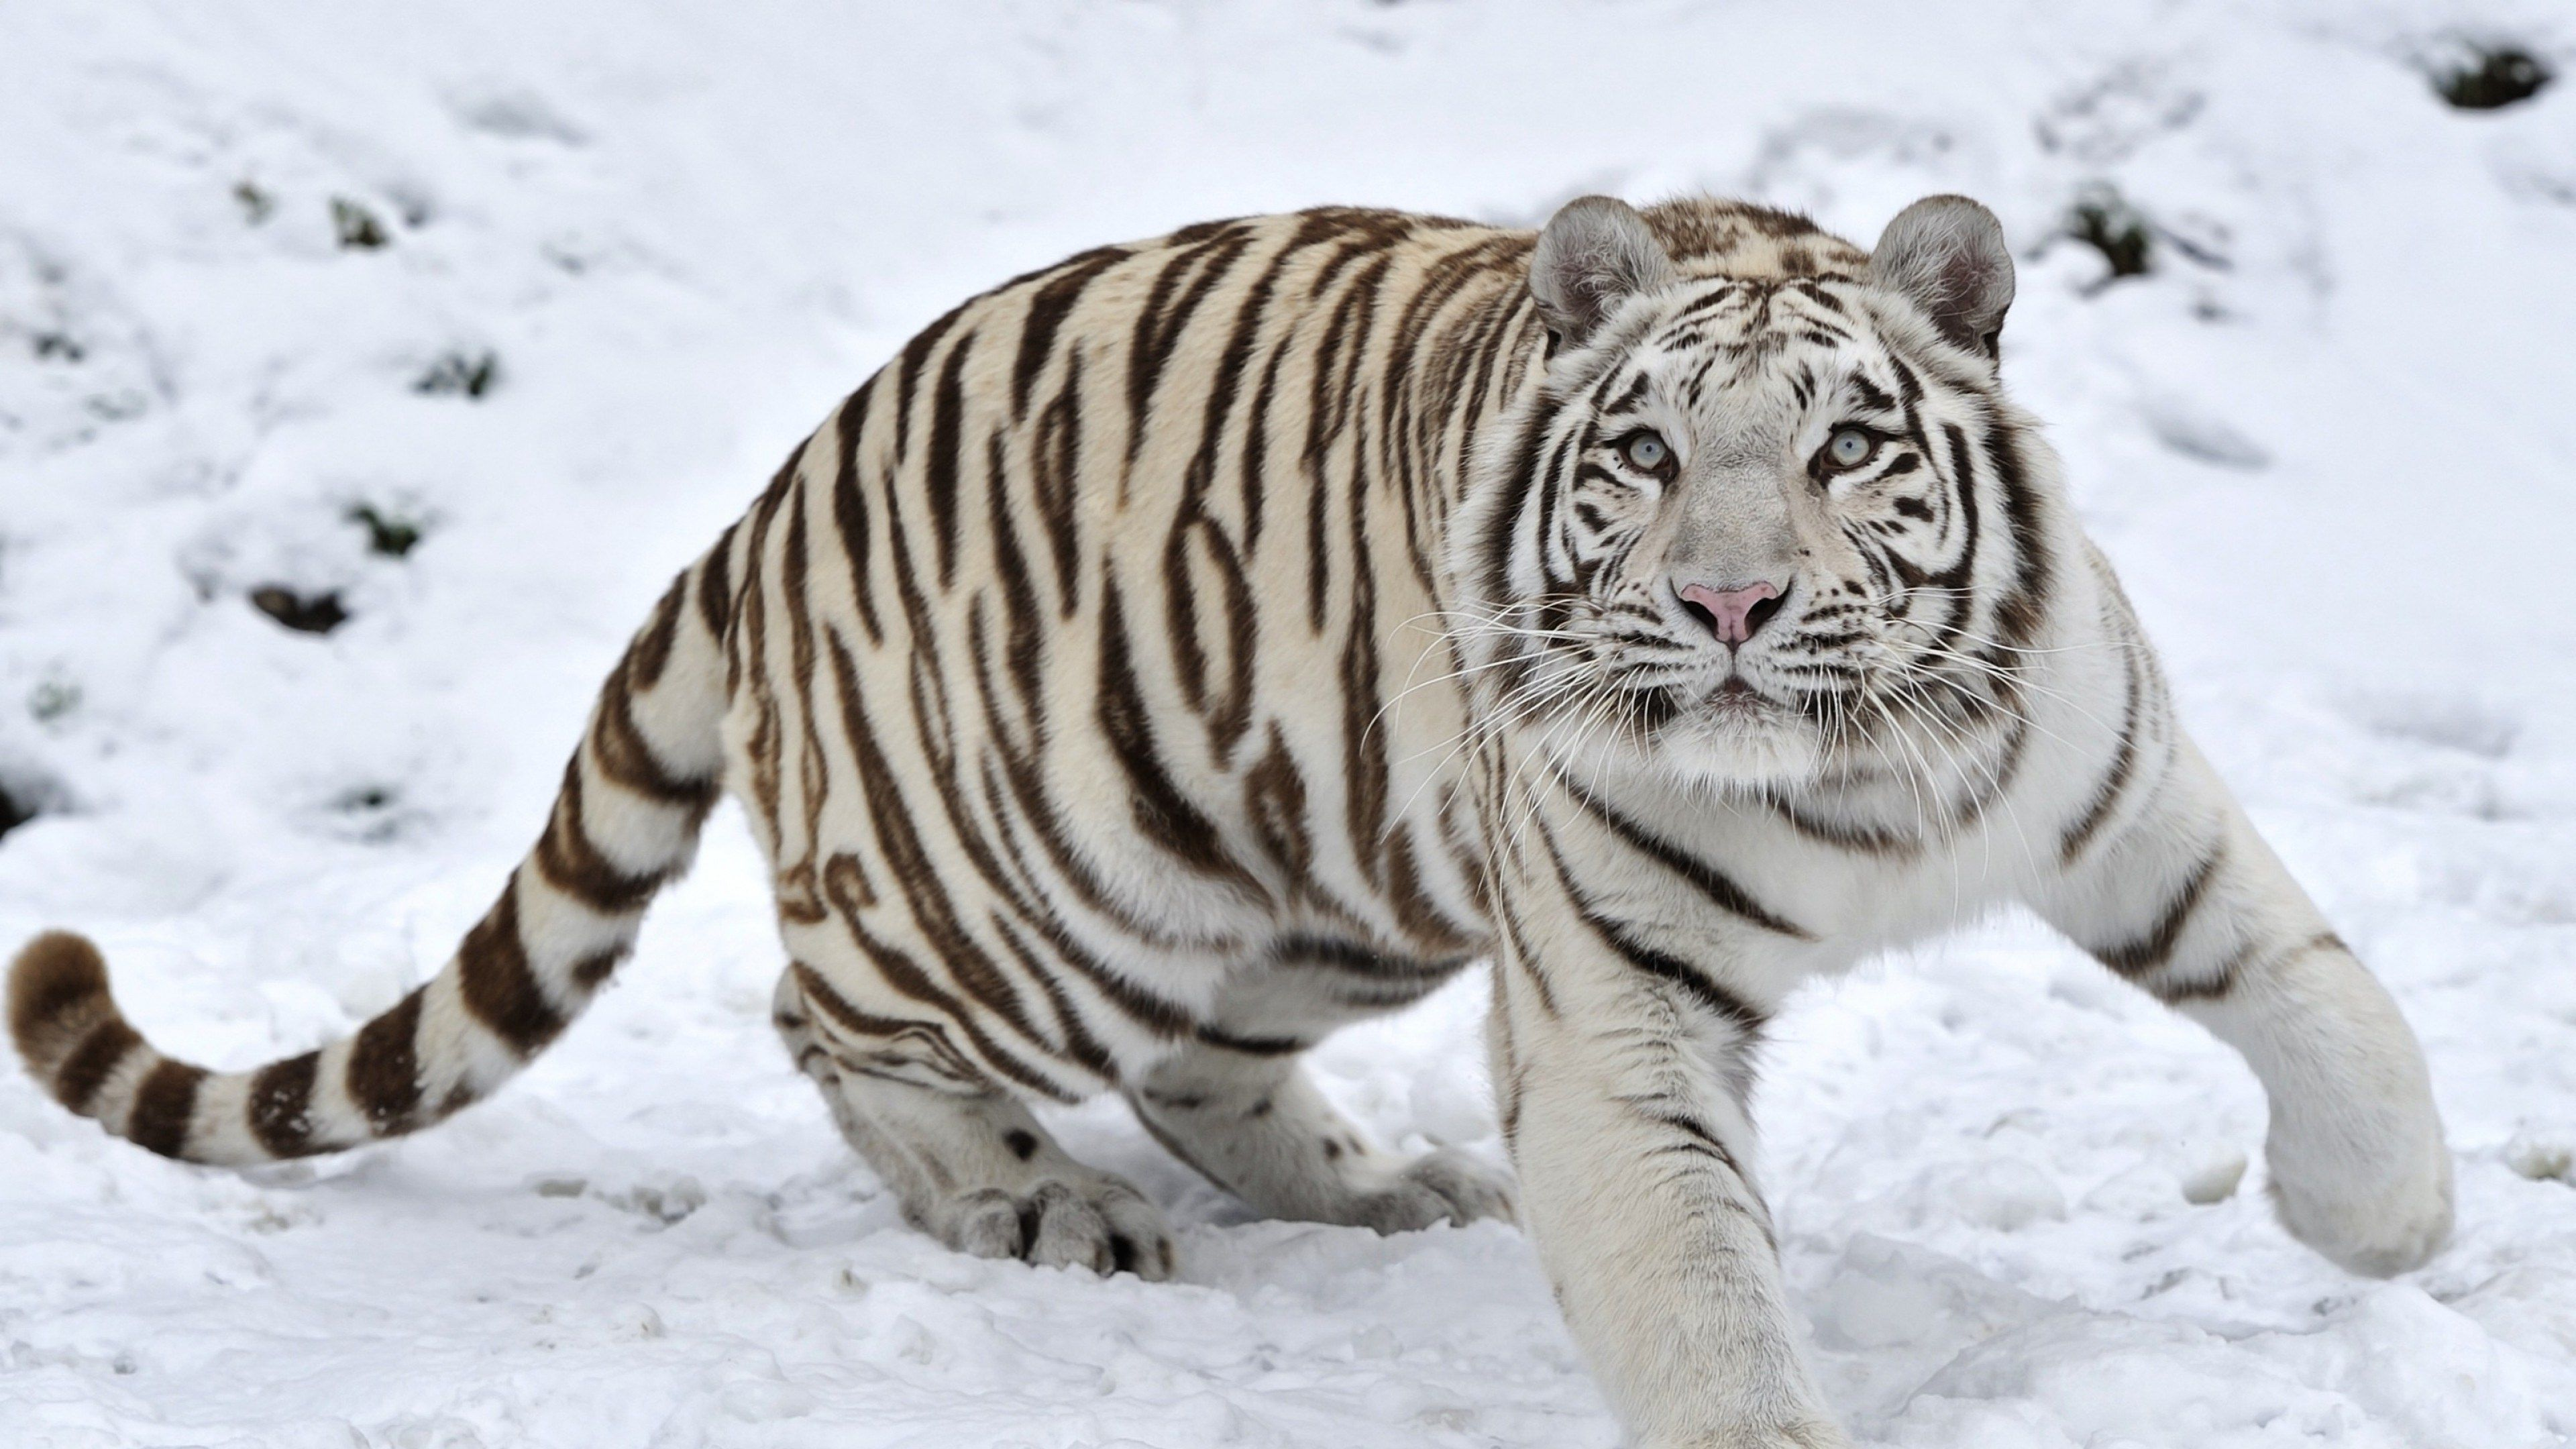 3840x2160 Tiger 4k Wallpaper Most Downloaded Snow Tiger White Tiger Snow Animals